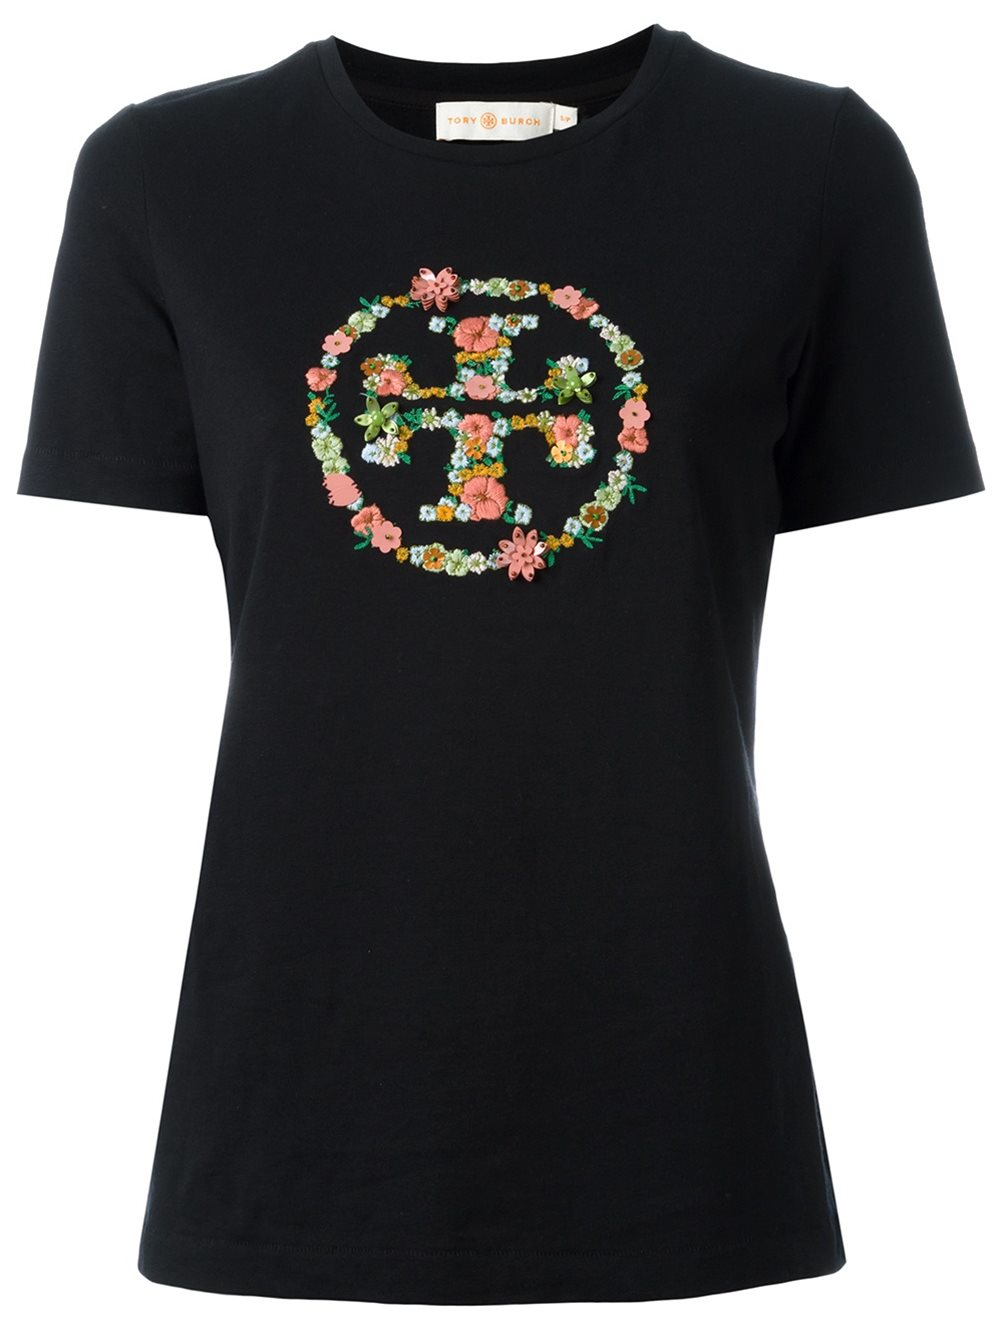 Tory burch embroidered logo t shirt in black lyst for Shirt with logo embroidered